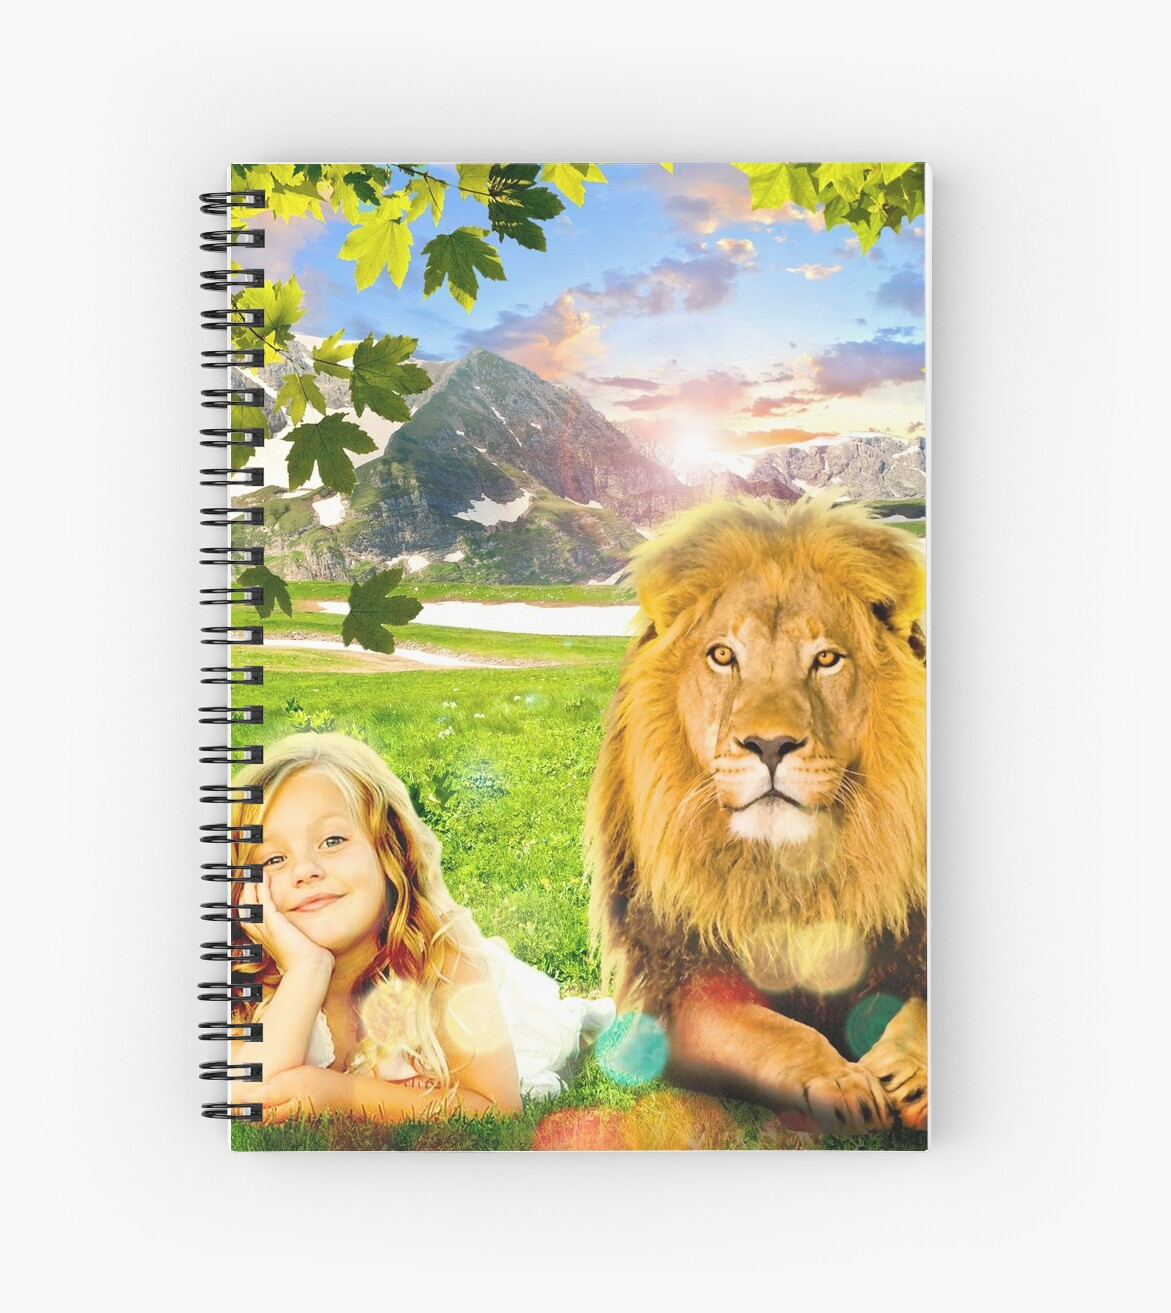 Just See Yourself (Girl and Lion) by JW ARTS & CRAFTS